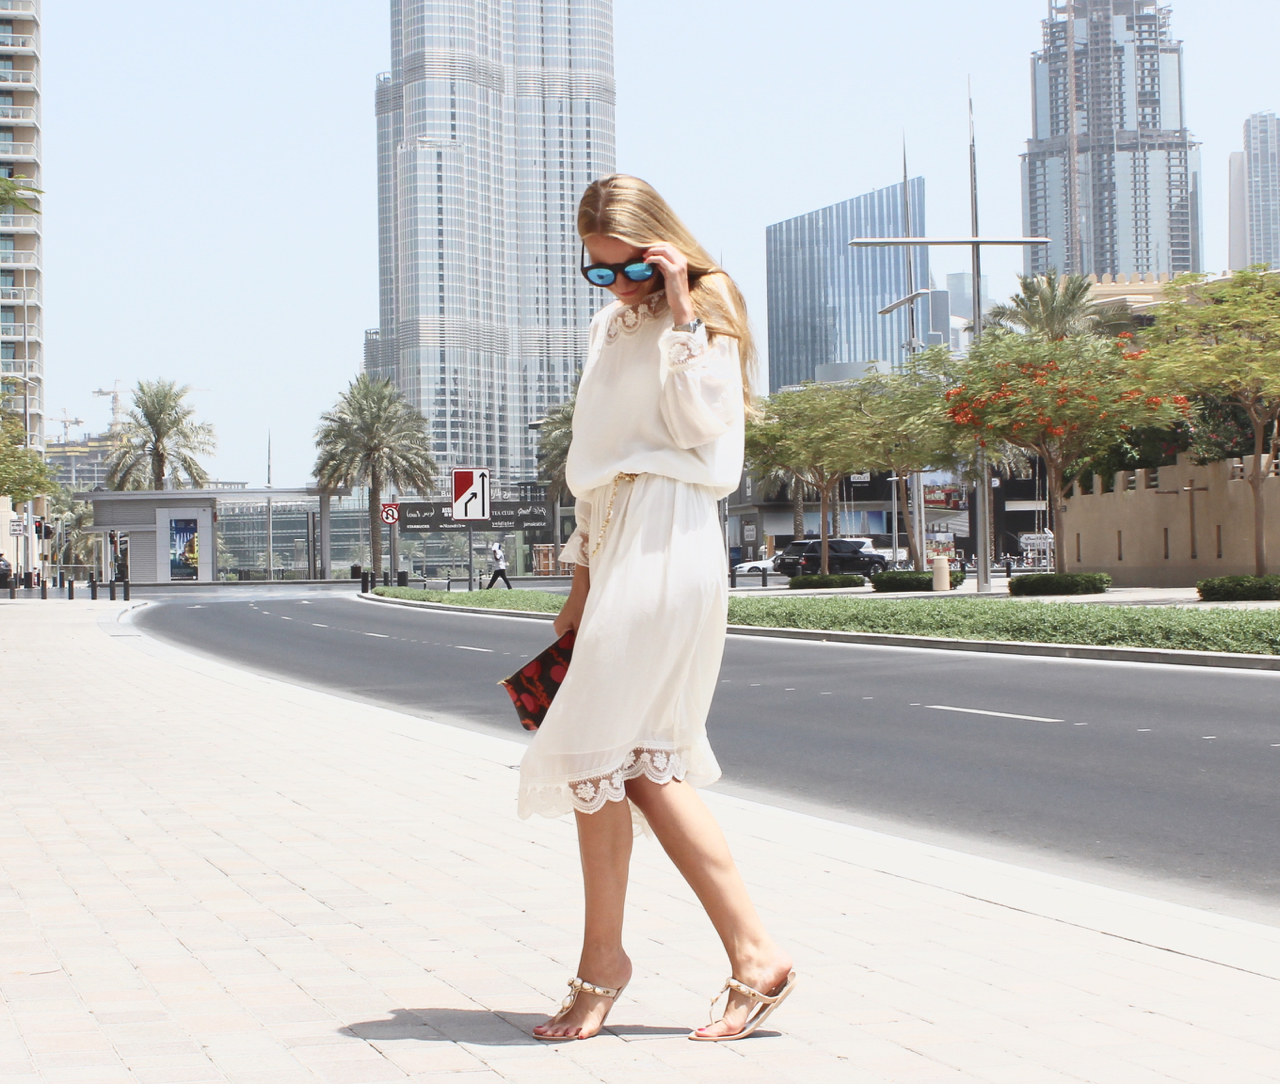 Throwback Outfit Downtown Dubai Jennifer PepperAndGold UAE VAE Emirates Fashion Zara BestSecret LV LouisVuitton